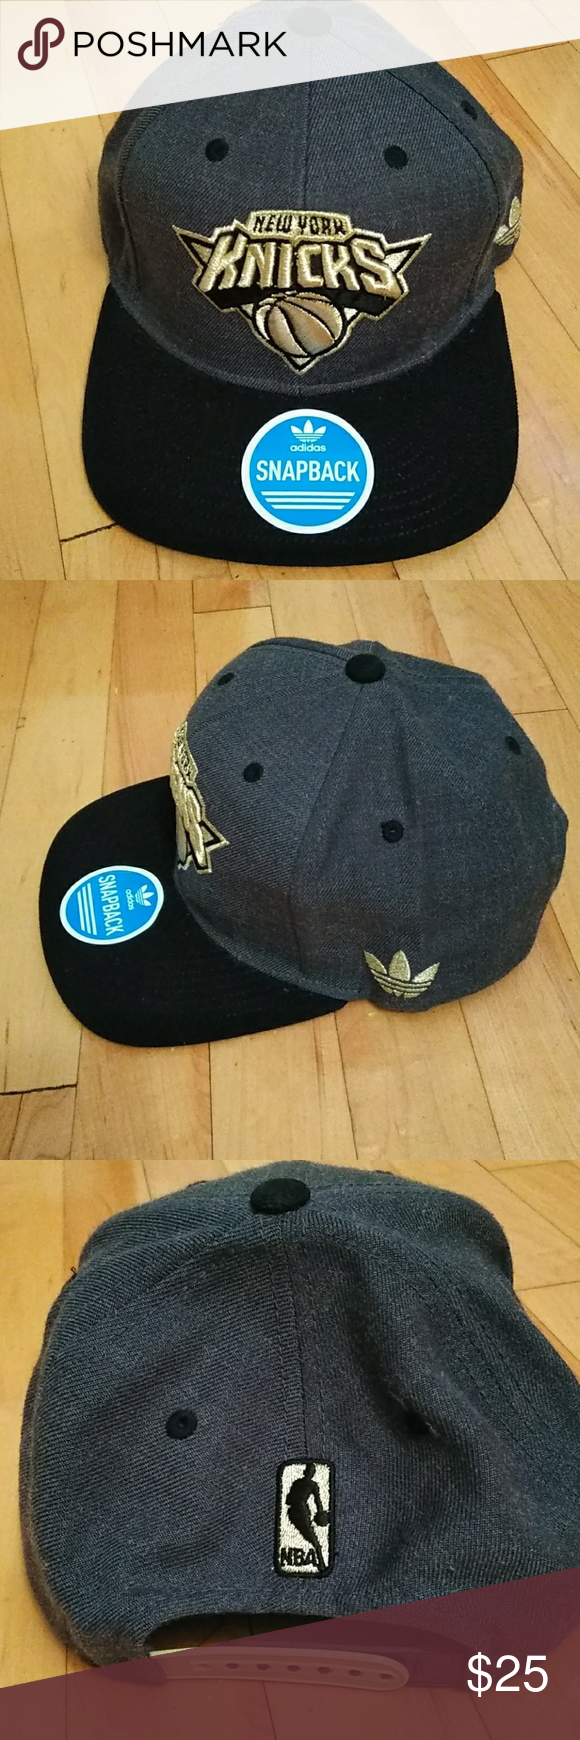 8350e73b105 Knicks black gray and gold snapback hat Knicks black gray and gold snapback  hay . Accessories Hats